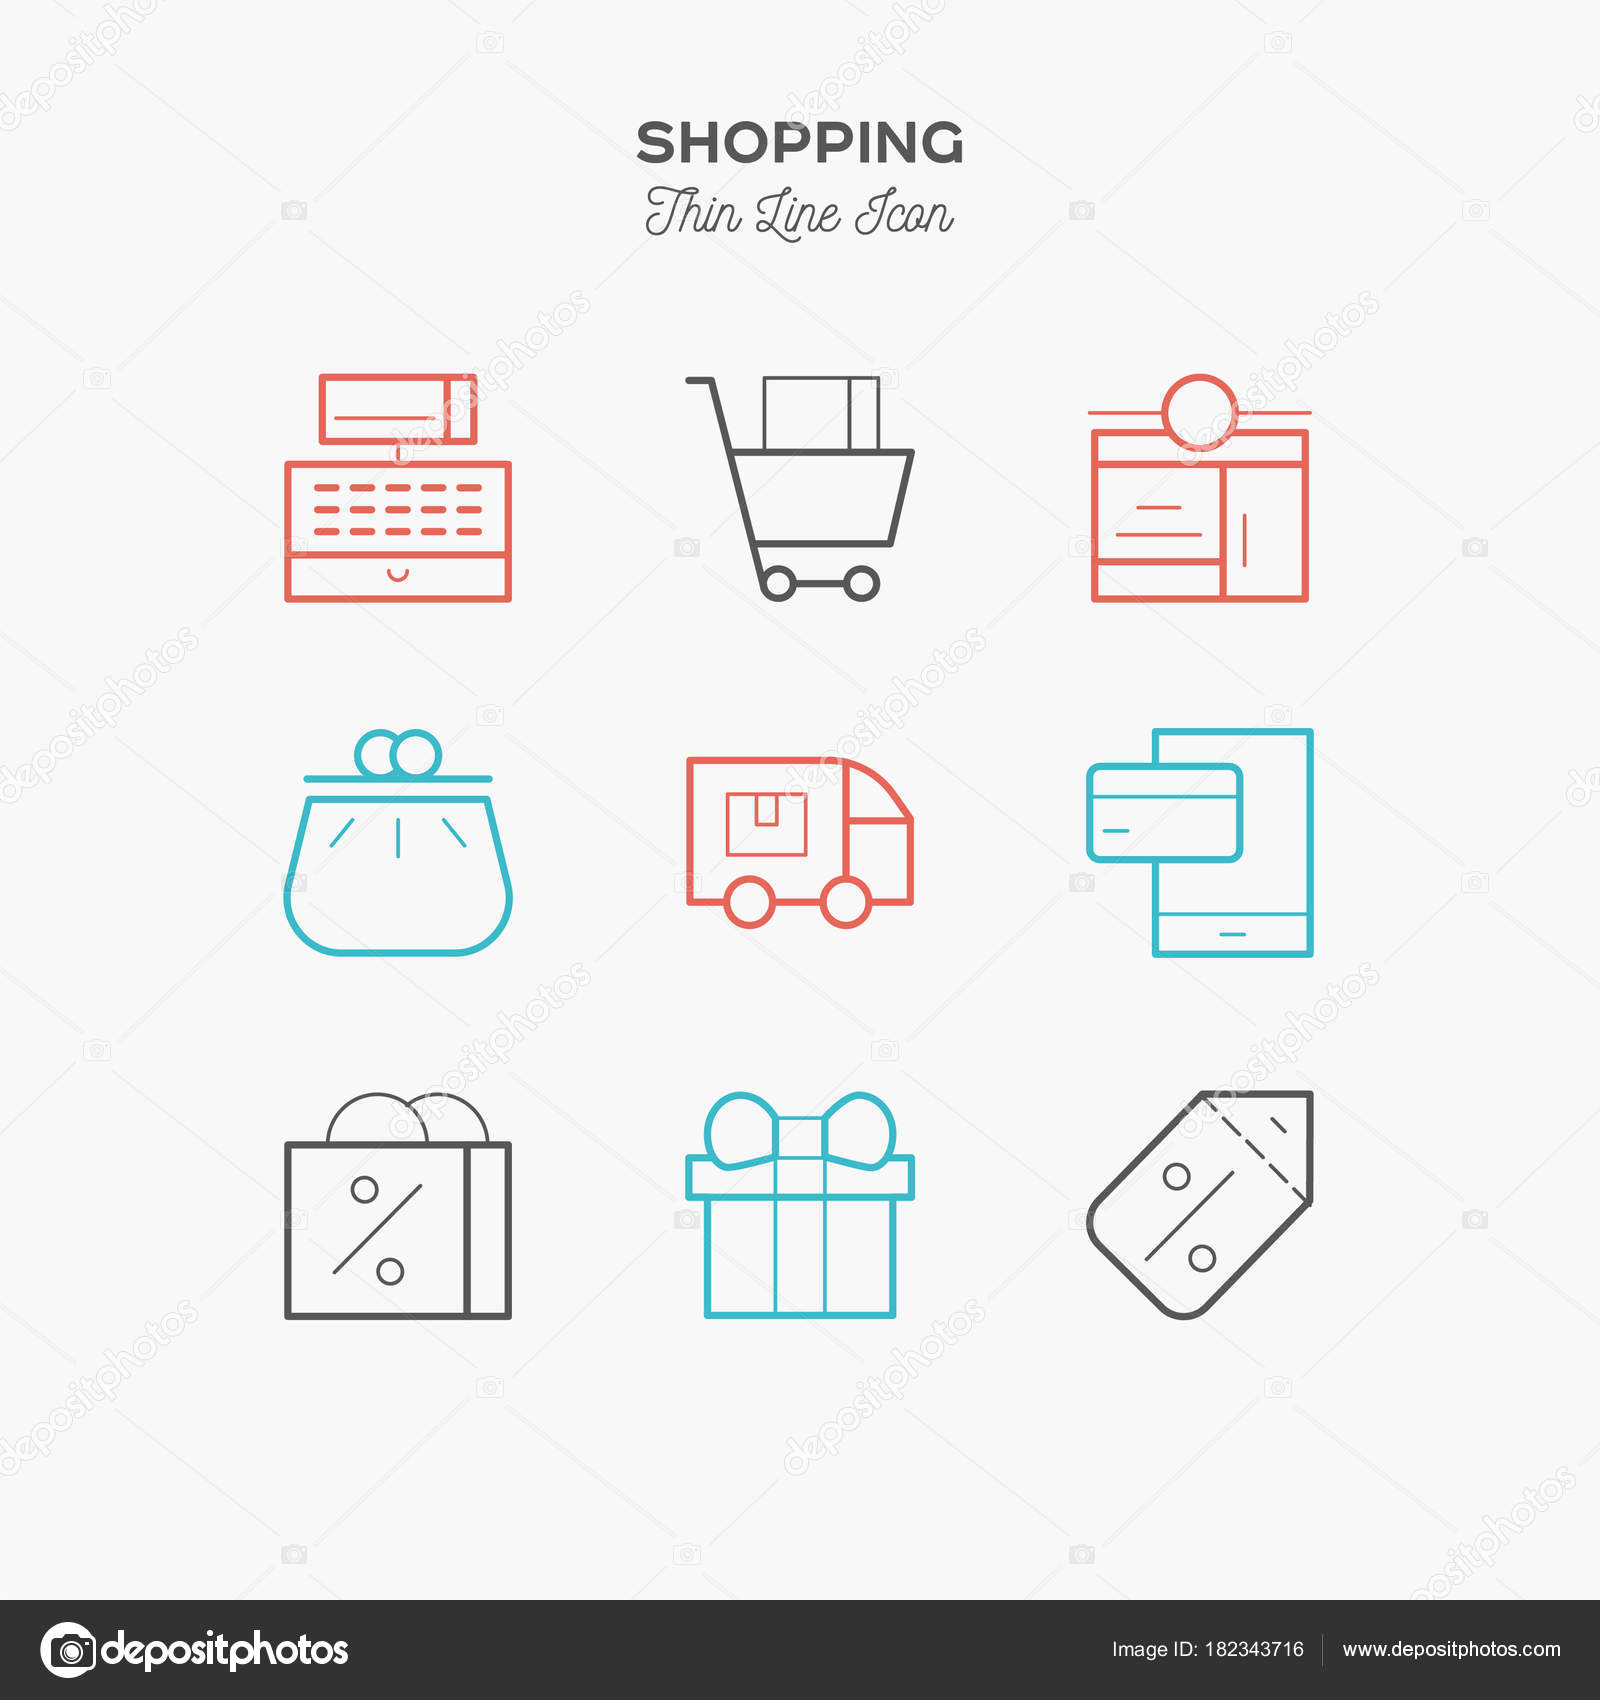 Simple Set Shopping Cart Related Vector Line Icons Contains Diagram Stock